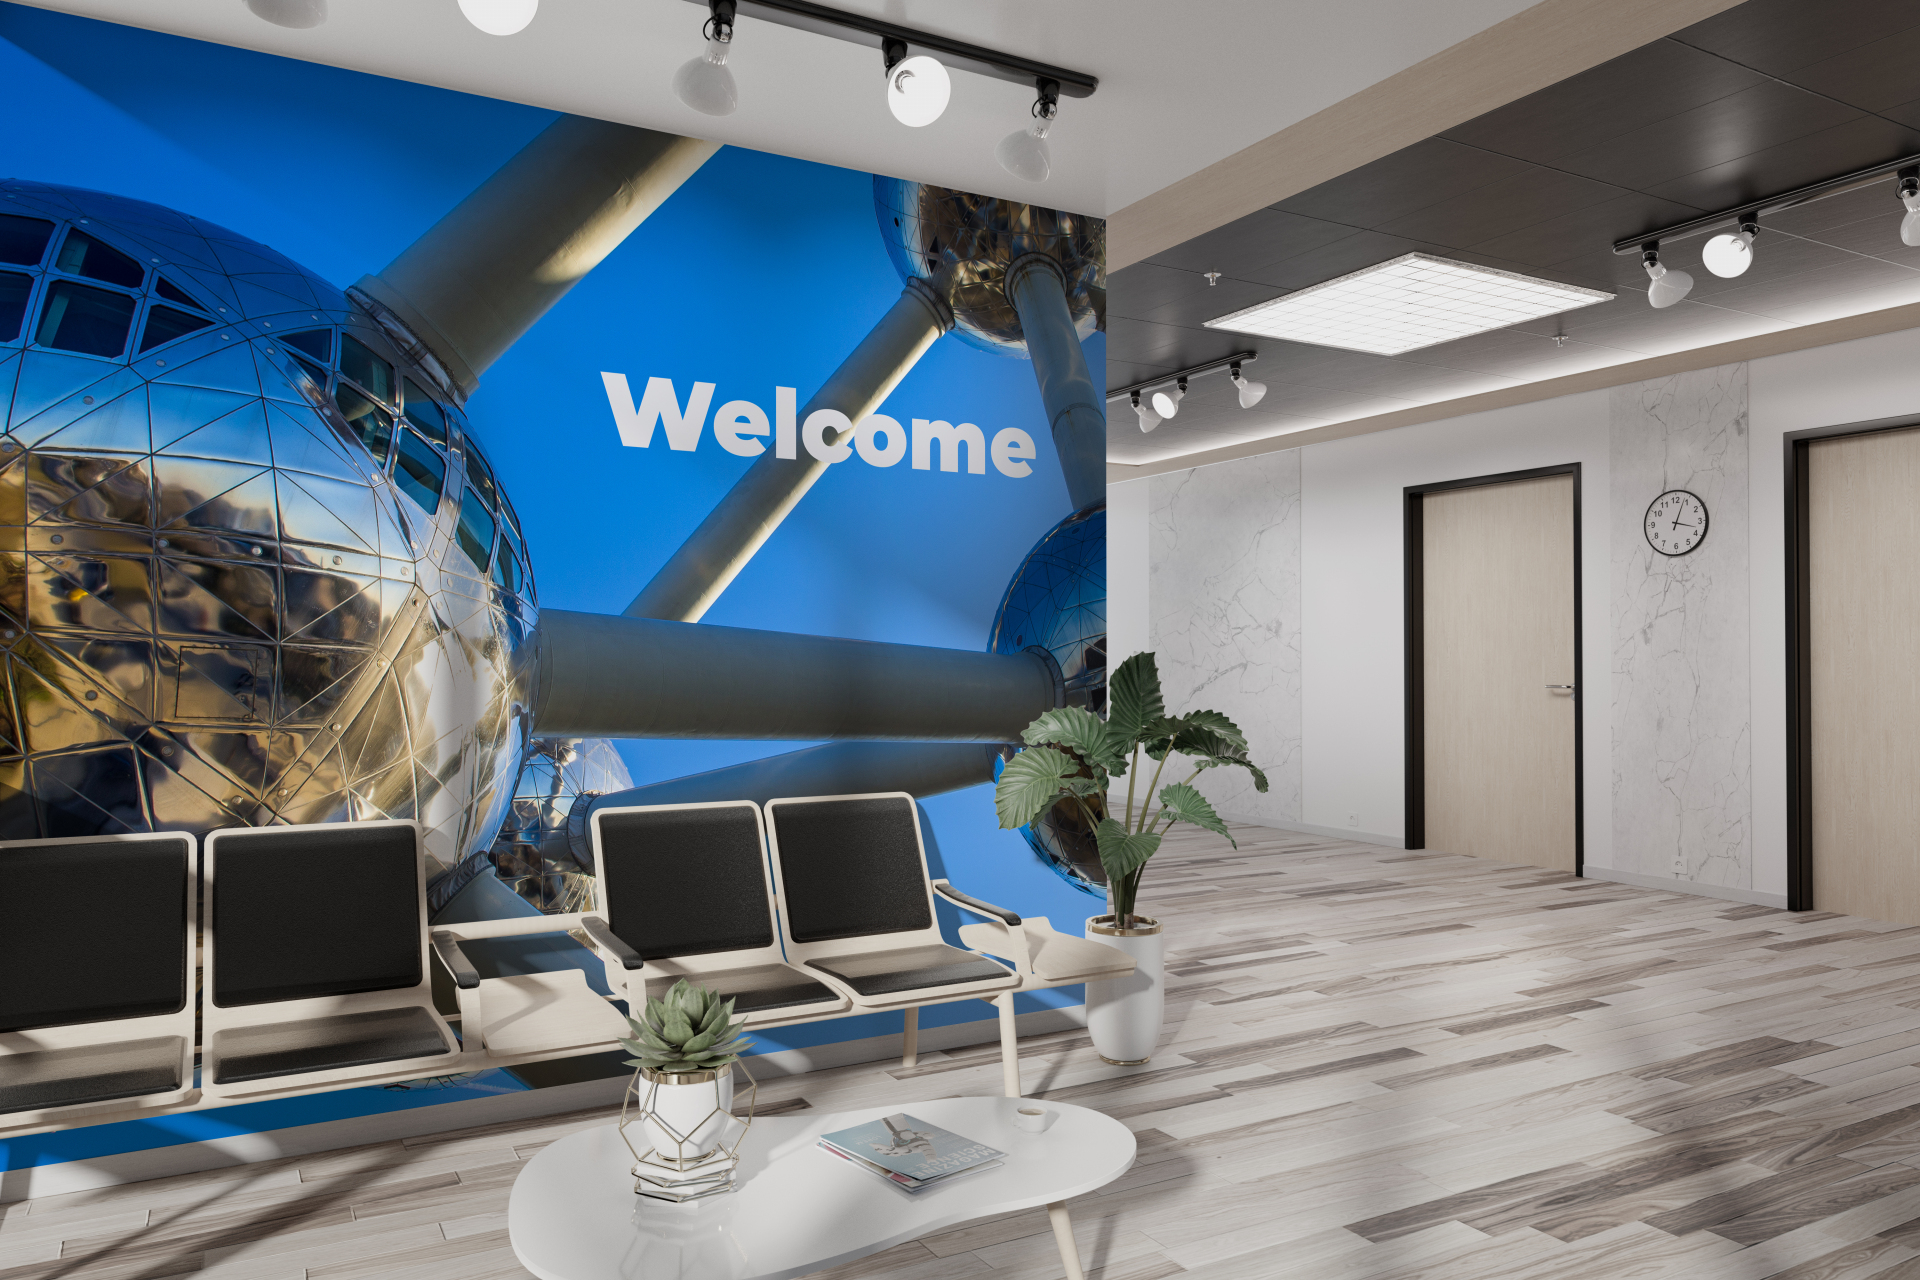 AXA_signage-on-office-interior2